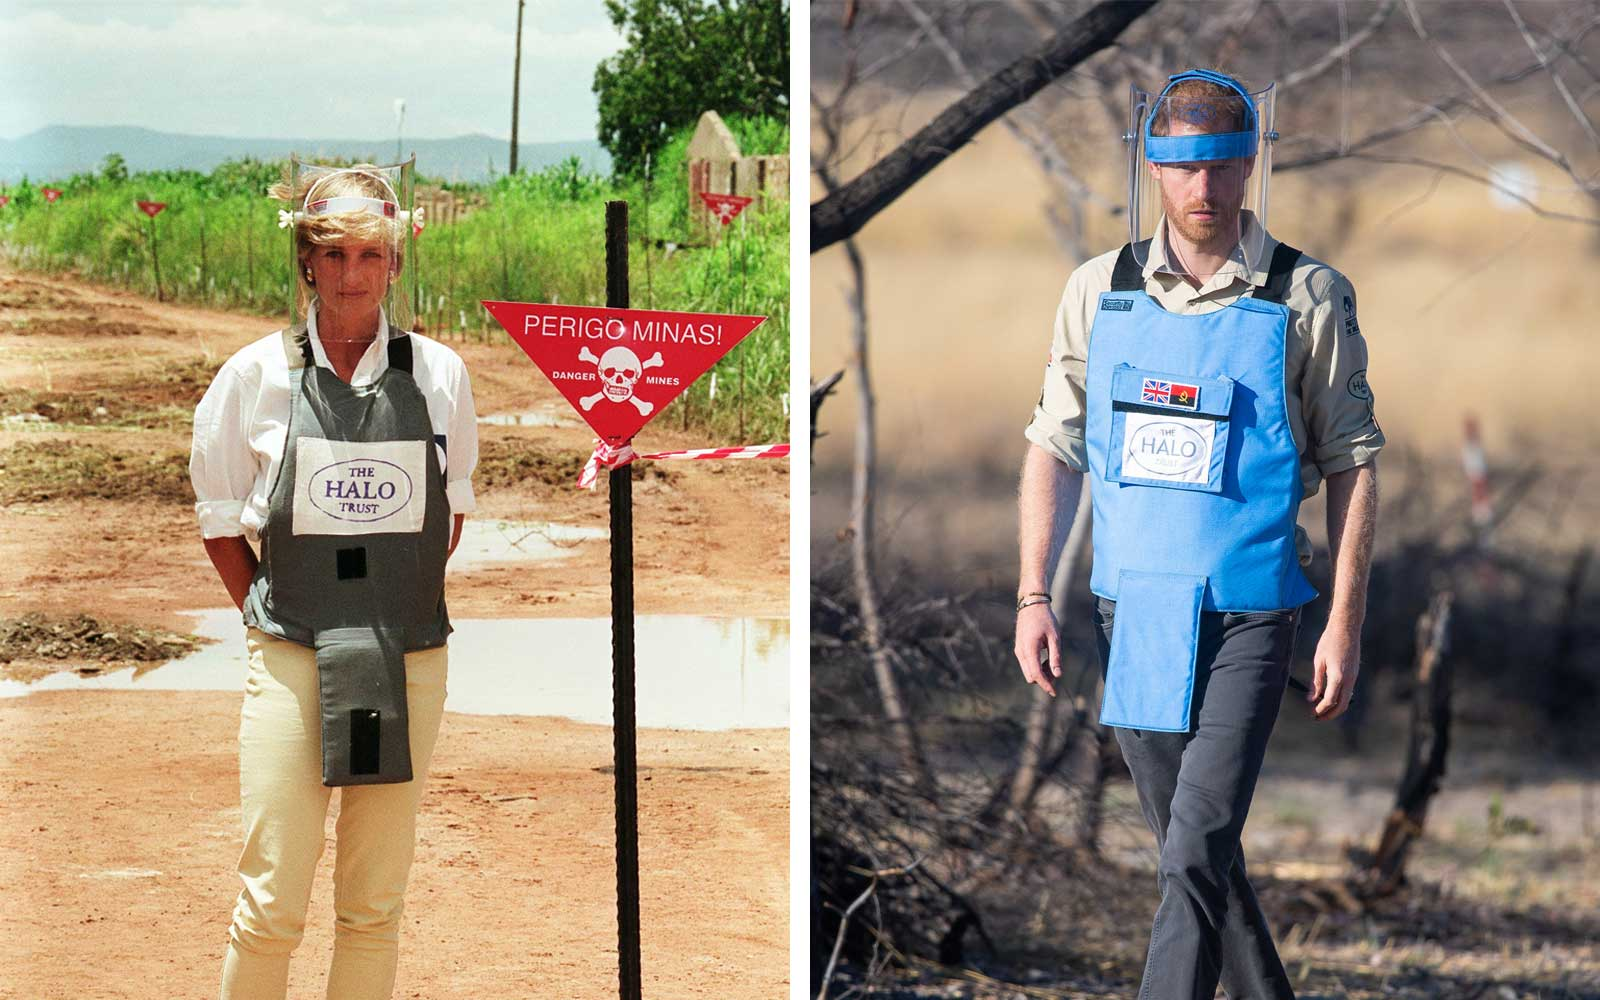 Princess Diana and Prince Harry 22 Years Apart, Walking Minefields in Angola